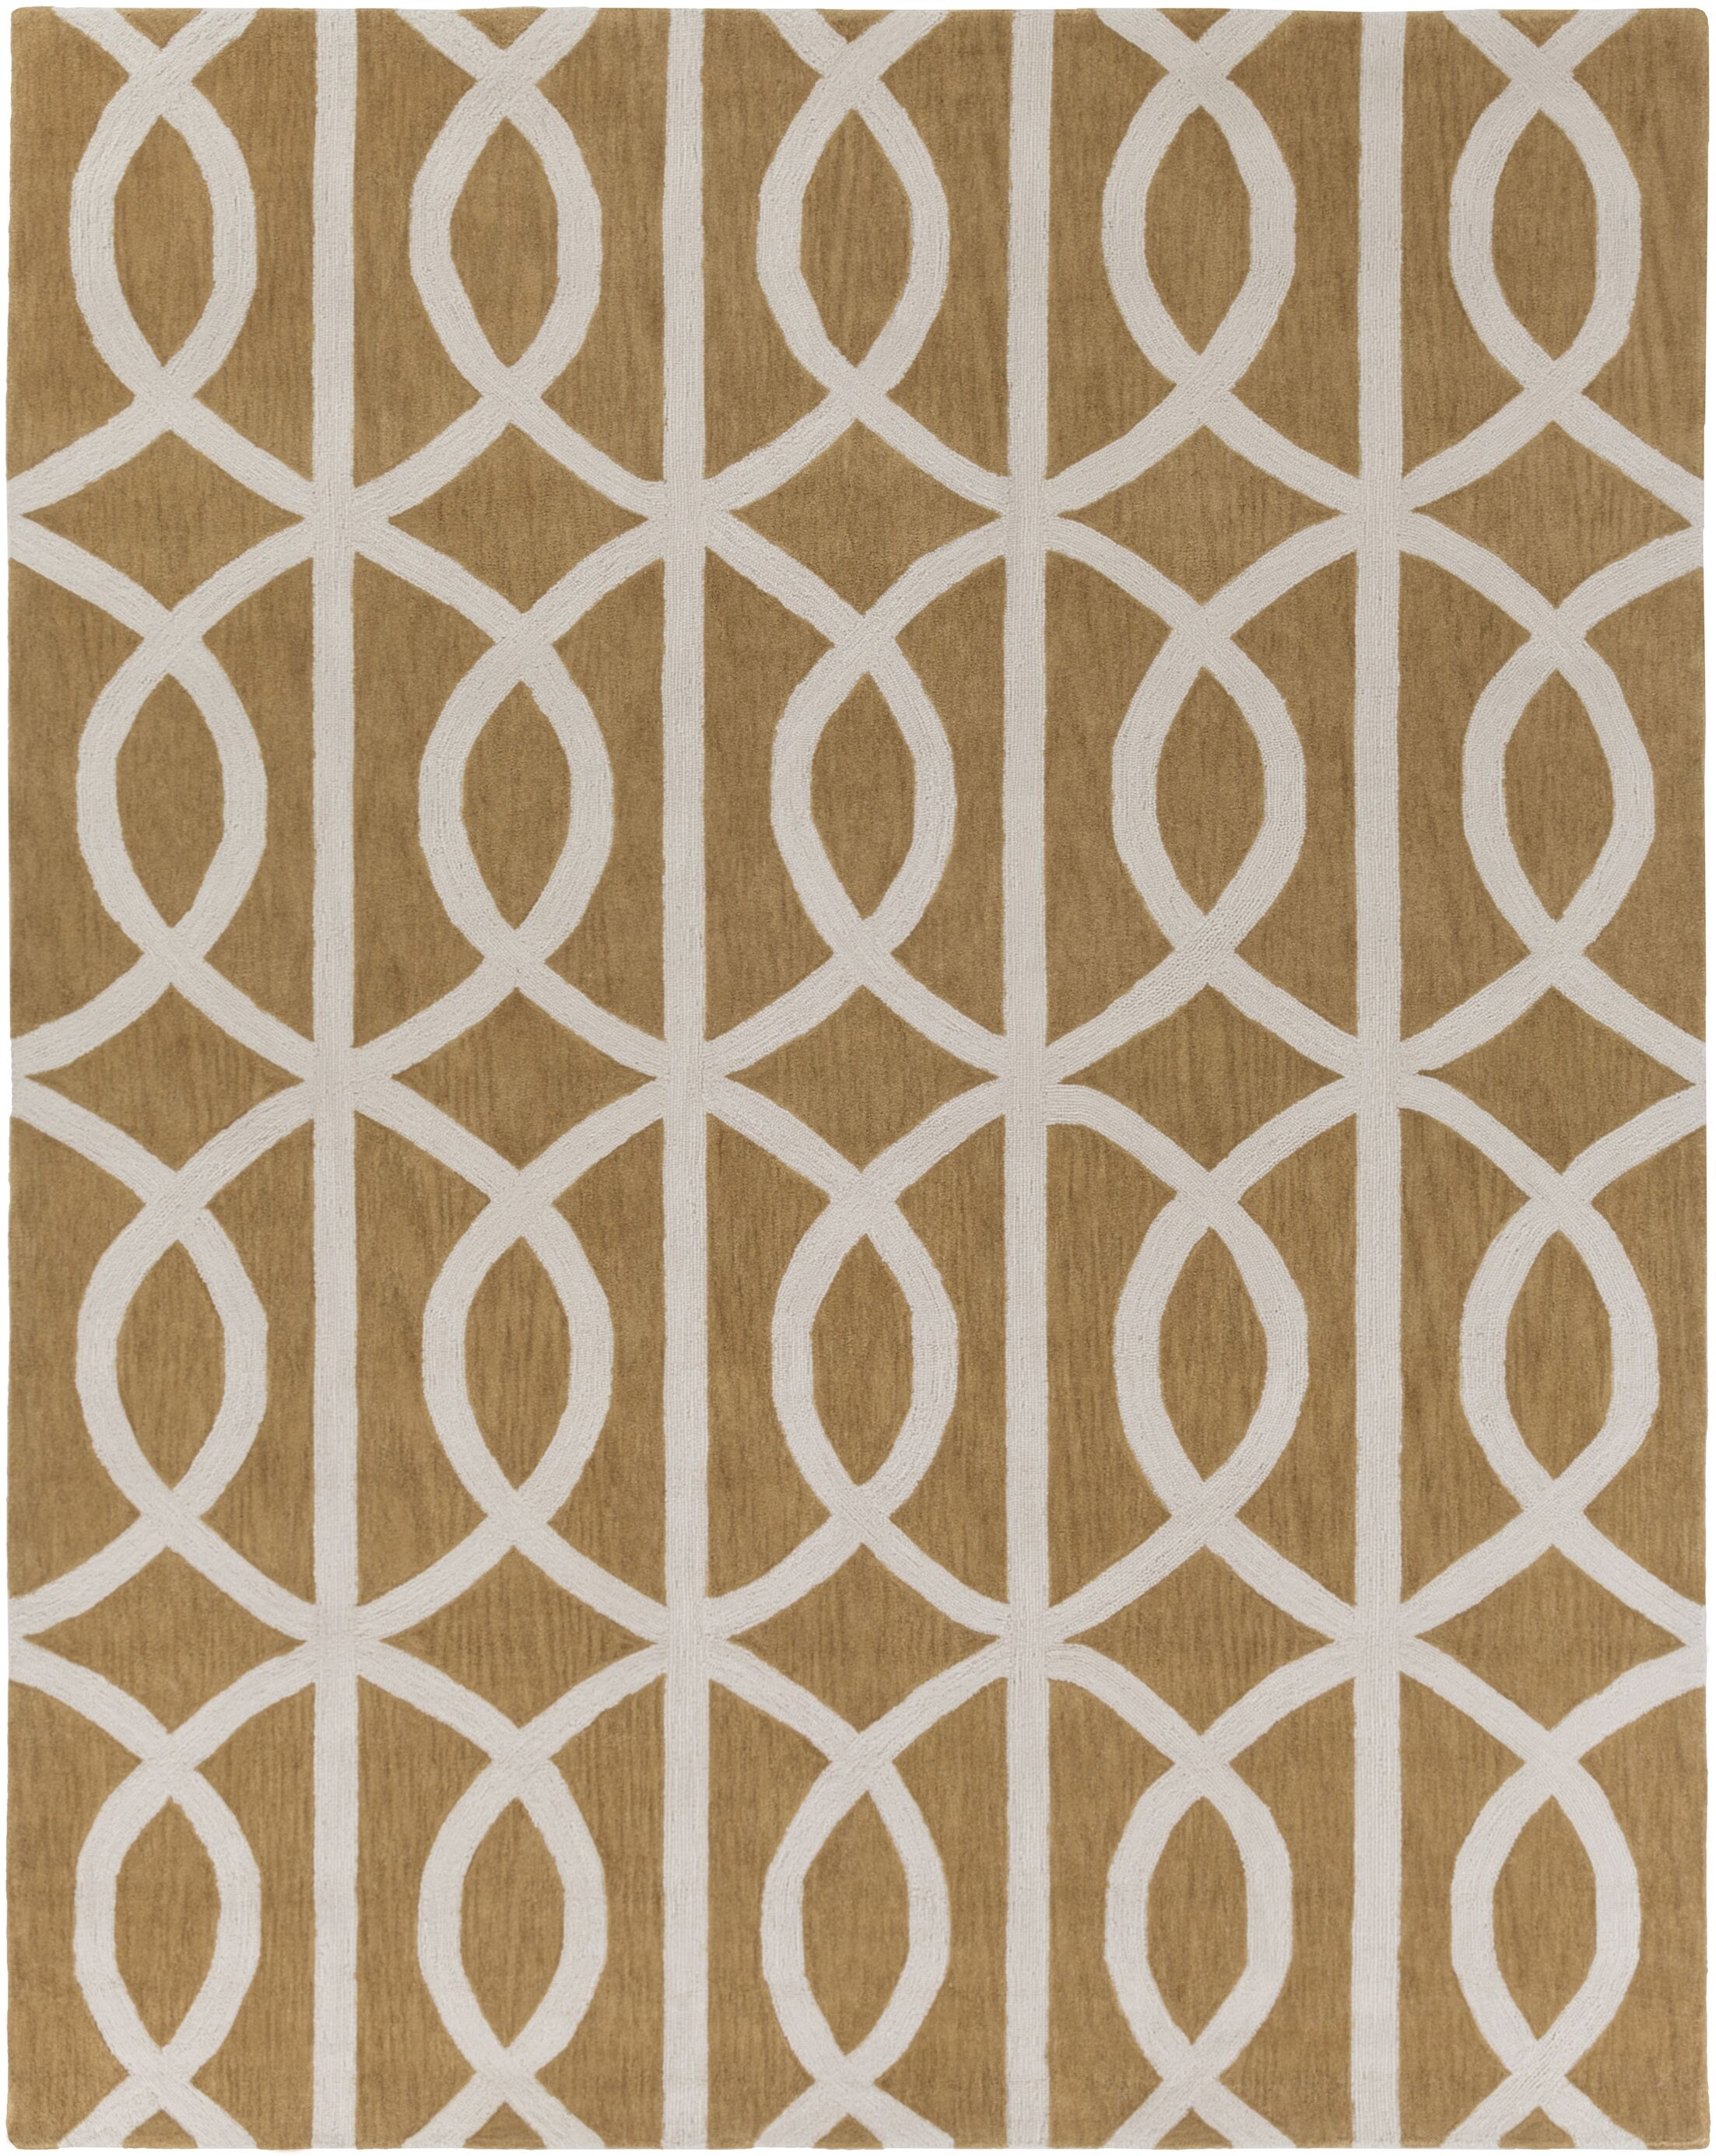 Gingrich Tan & Ivory Area Rug Rug Size: Rectangle 5' x 7'6